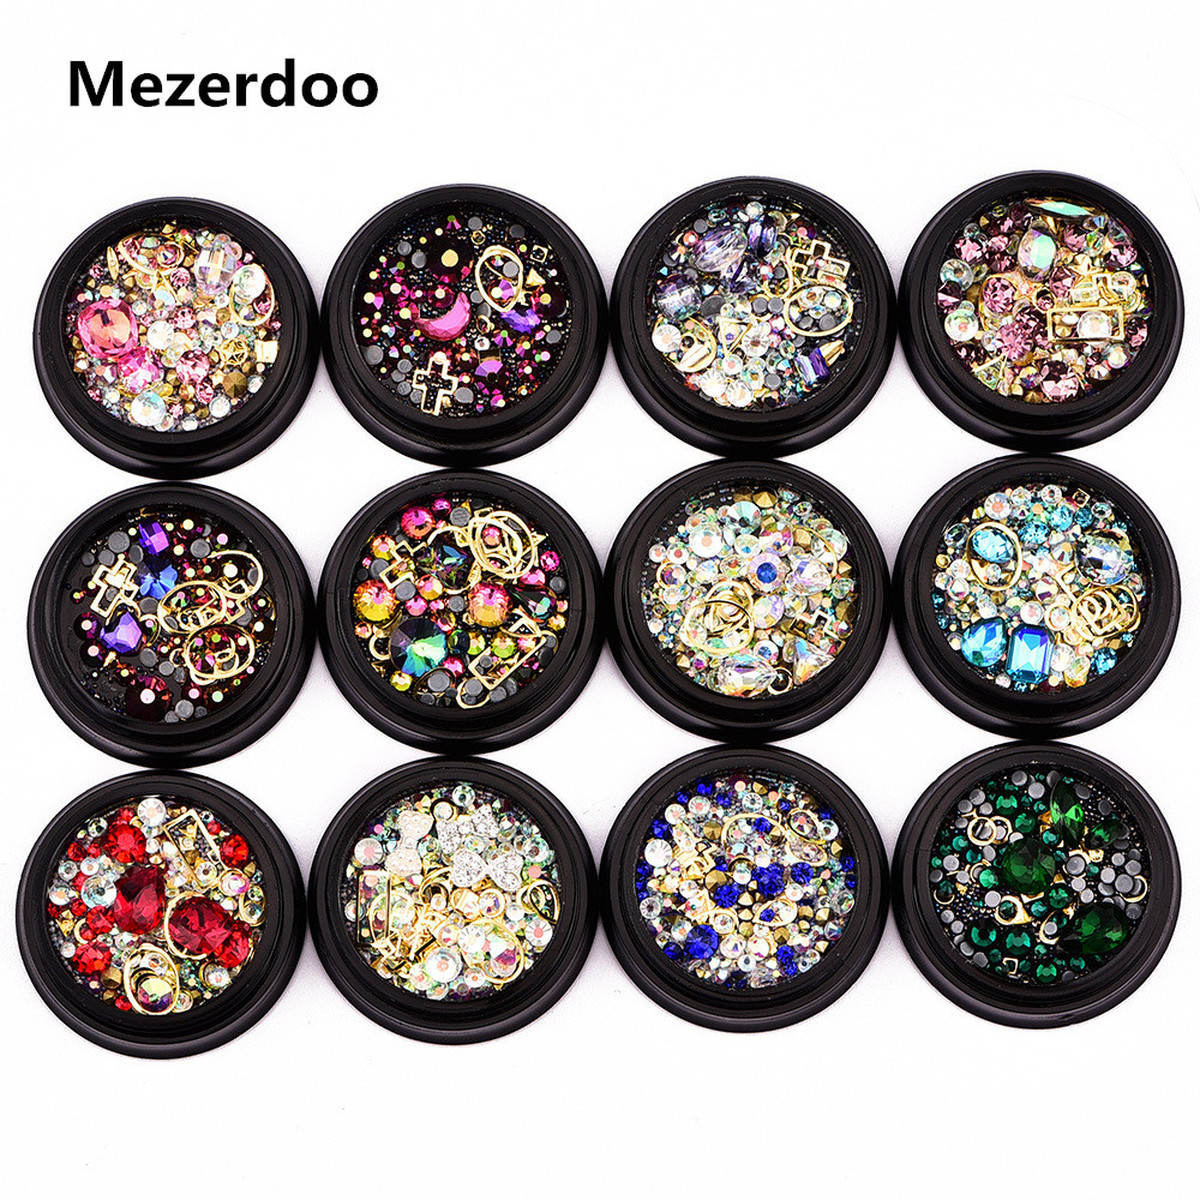 Nail Jewelry 1 Jar for Beads Caviar Nails Art Decoration Diamonds Tips Glass Glitter Rhinestones for Nail Mixed 3D Manicure DIY 10g box clear nail caviar micro beads 3d glitter mini beans tiny tips decorations diy nail art rhinestones manicure accessories